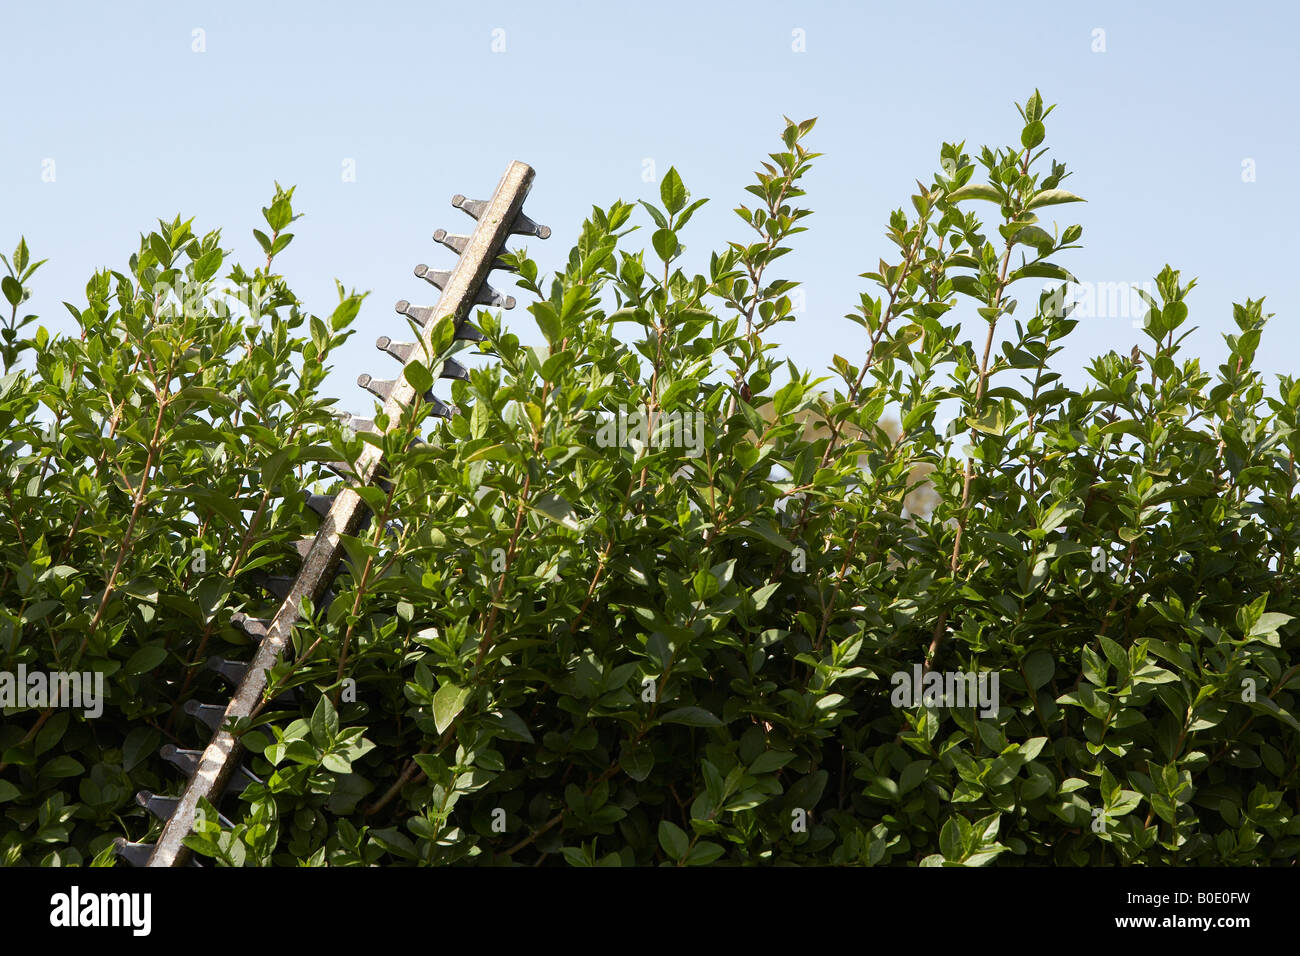 Hedge trimmer, close-up - Stock Image